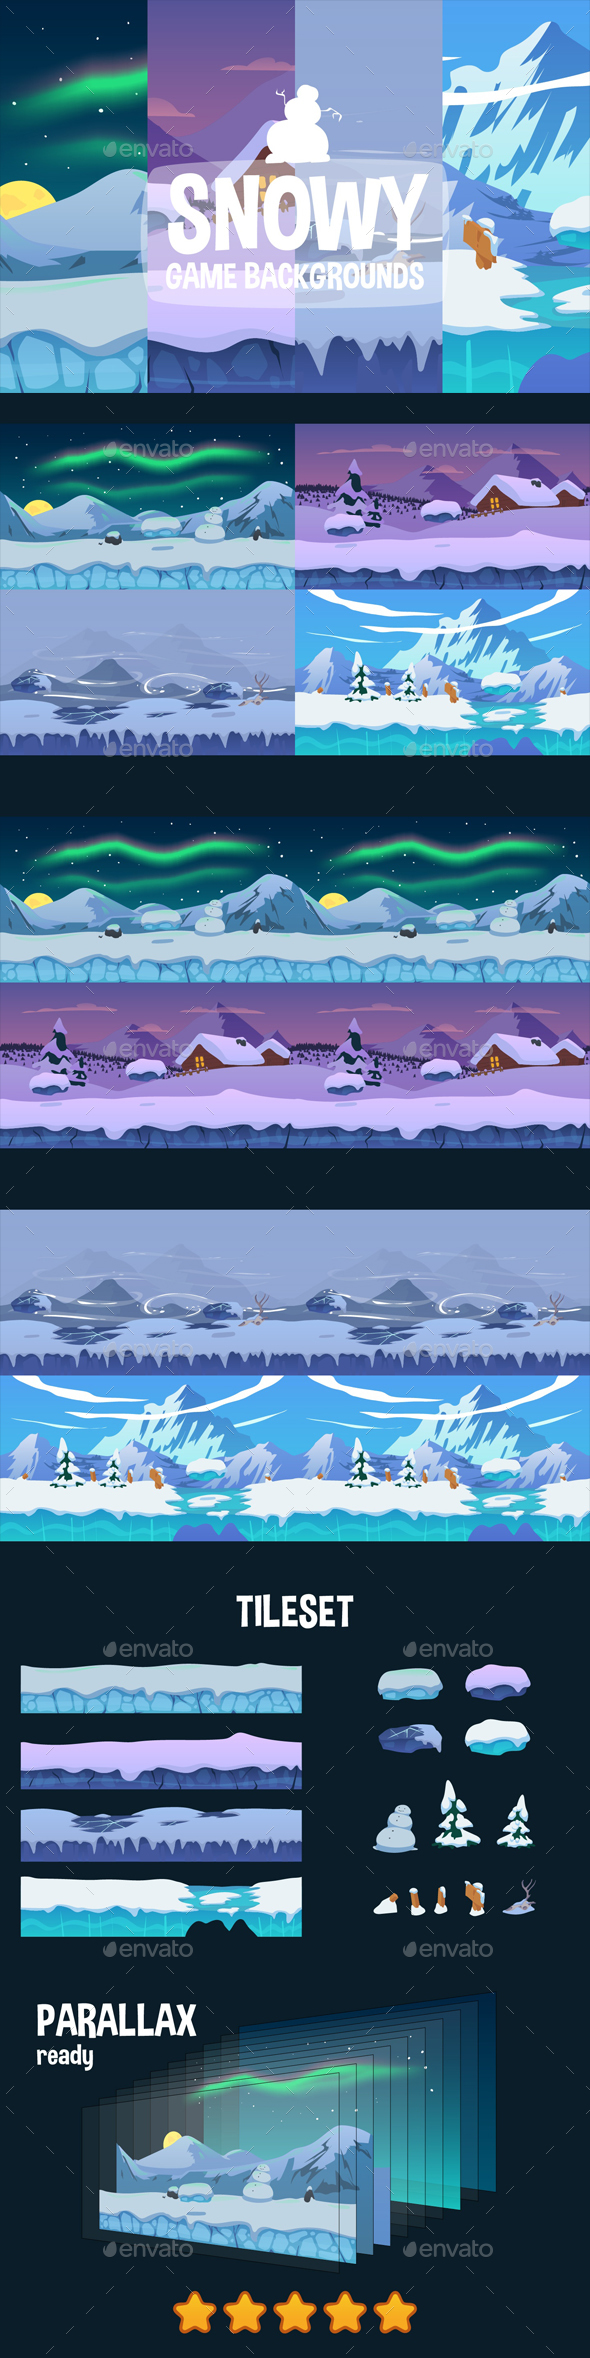 Parallax Snowy 2D Backgrounds - Backgrounds Game Assets